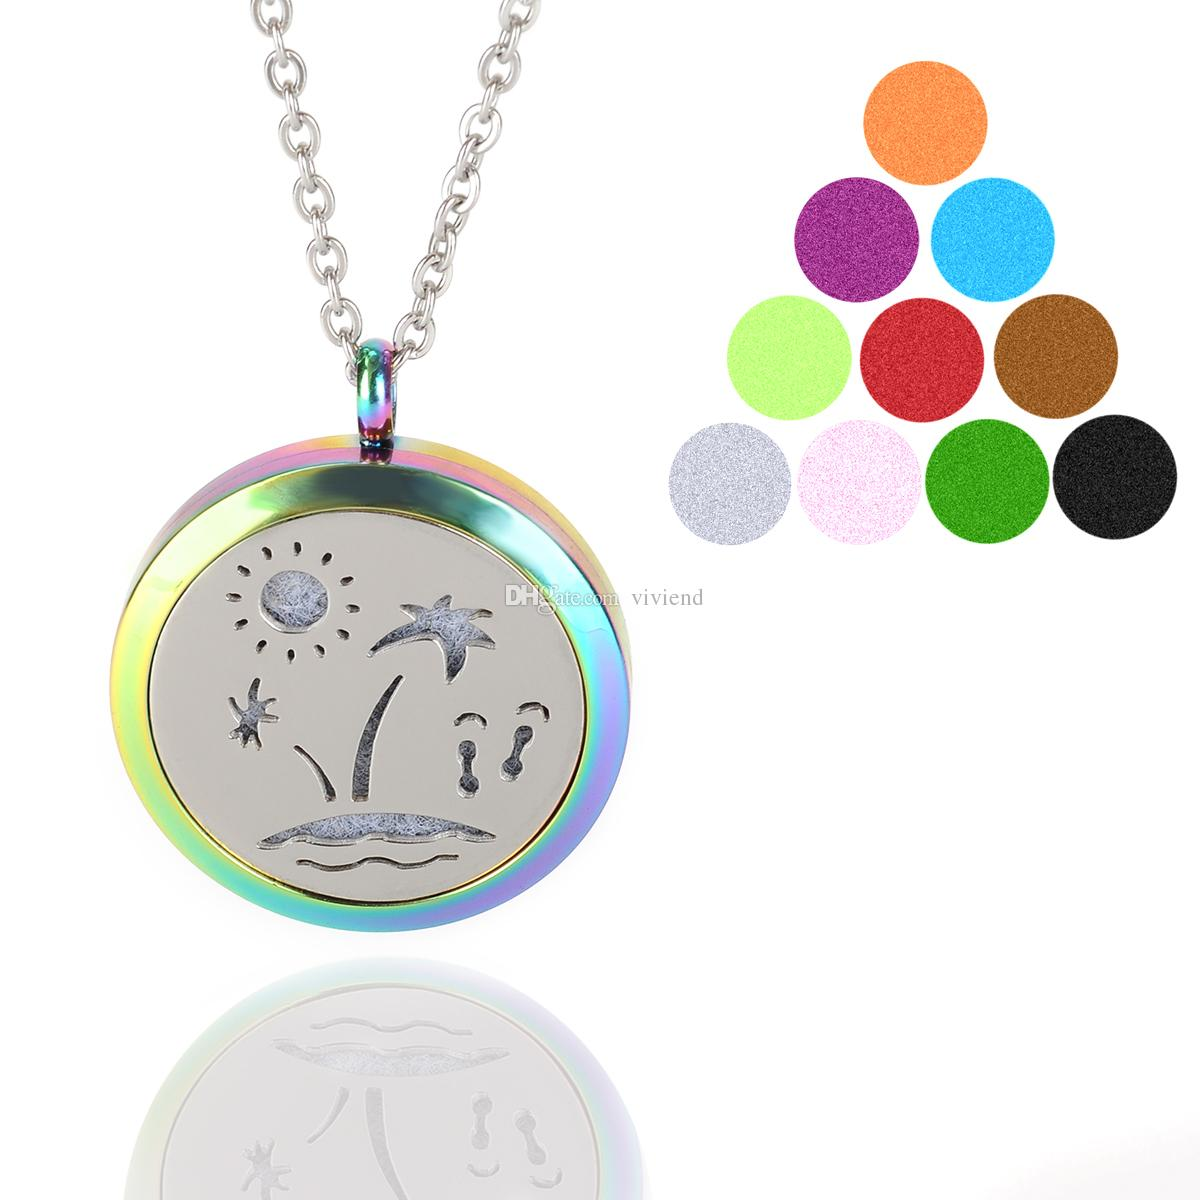 Aromatherapy Essential Oil Diffuser Necklace Multicolor Seaside Scenery Locket Pendant with Refill Pads 316L Stainless Steel